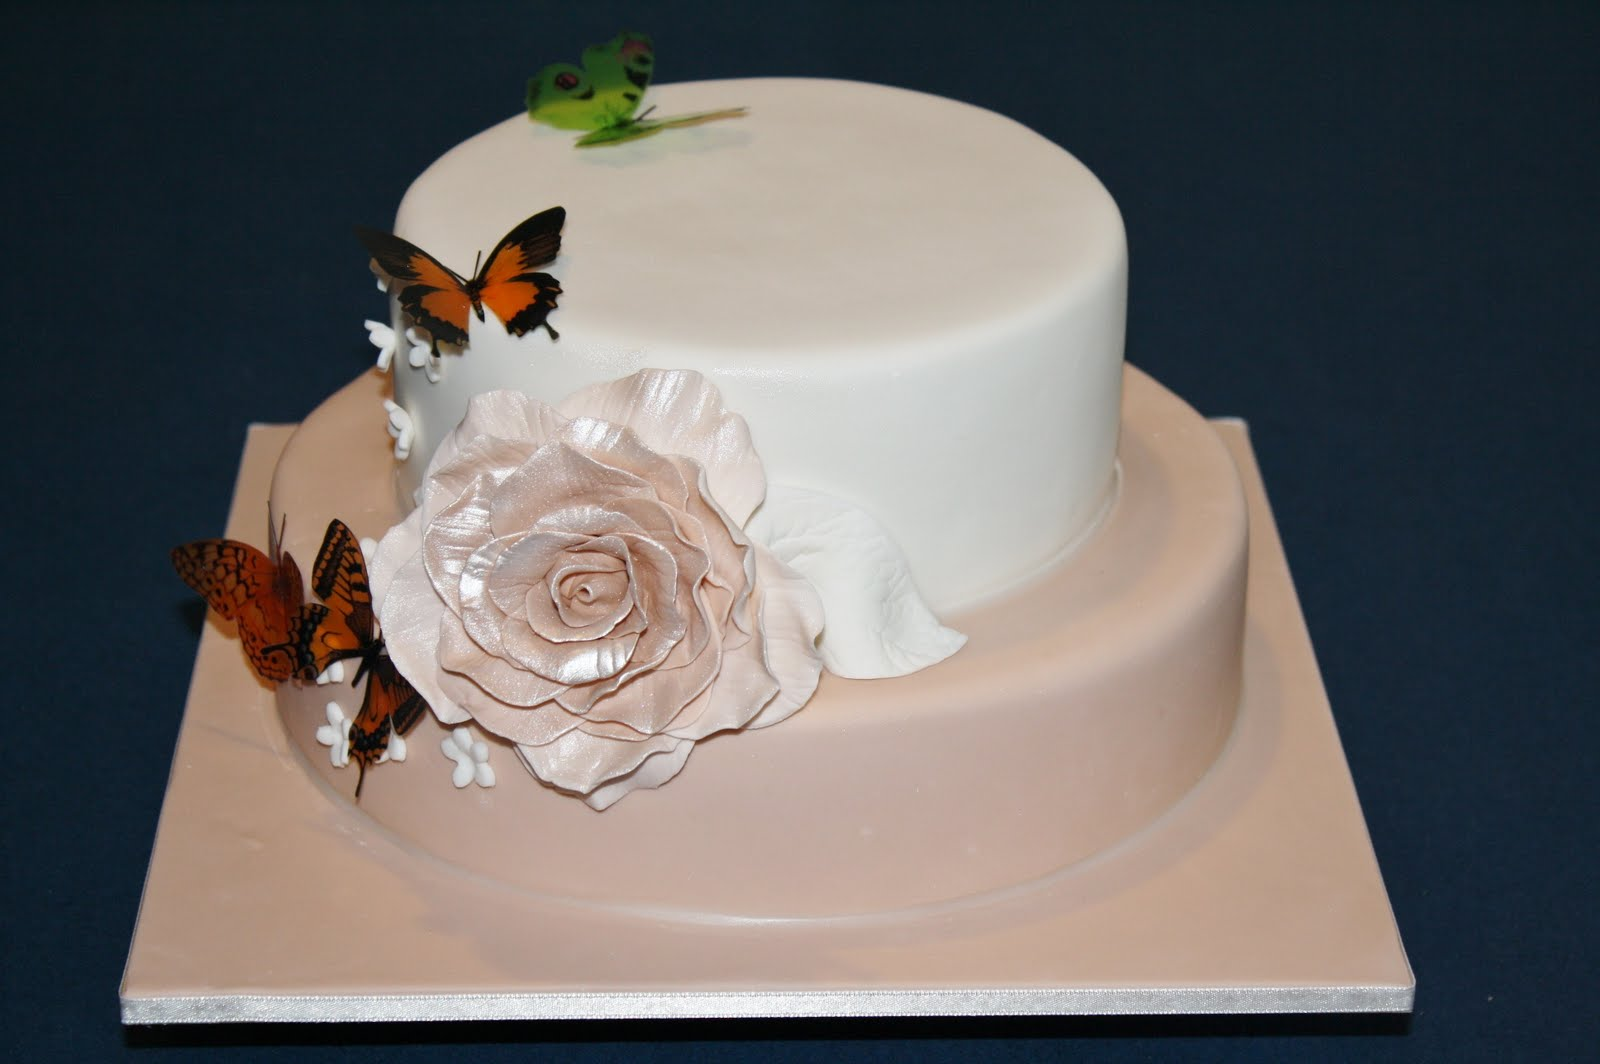 Birthday Cakes Beautiful Pictures ~ Sandy's cakes: beautiful jody's 40th birthday cake